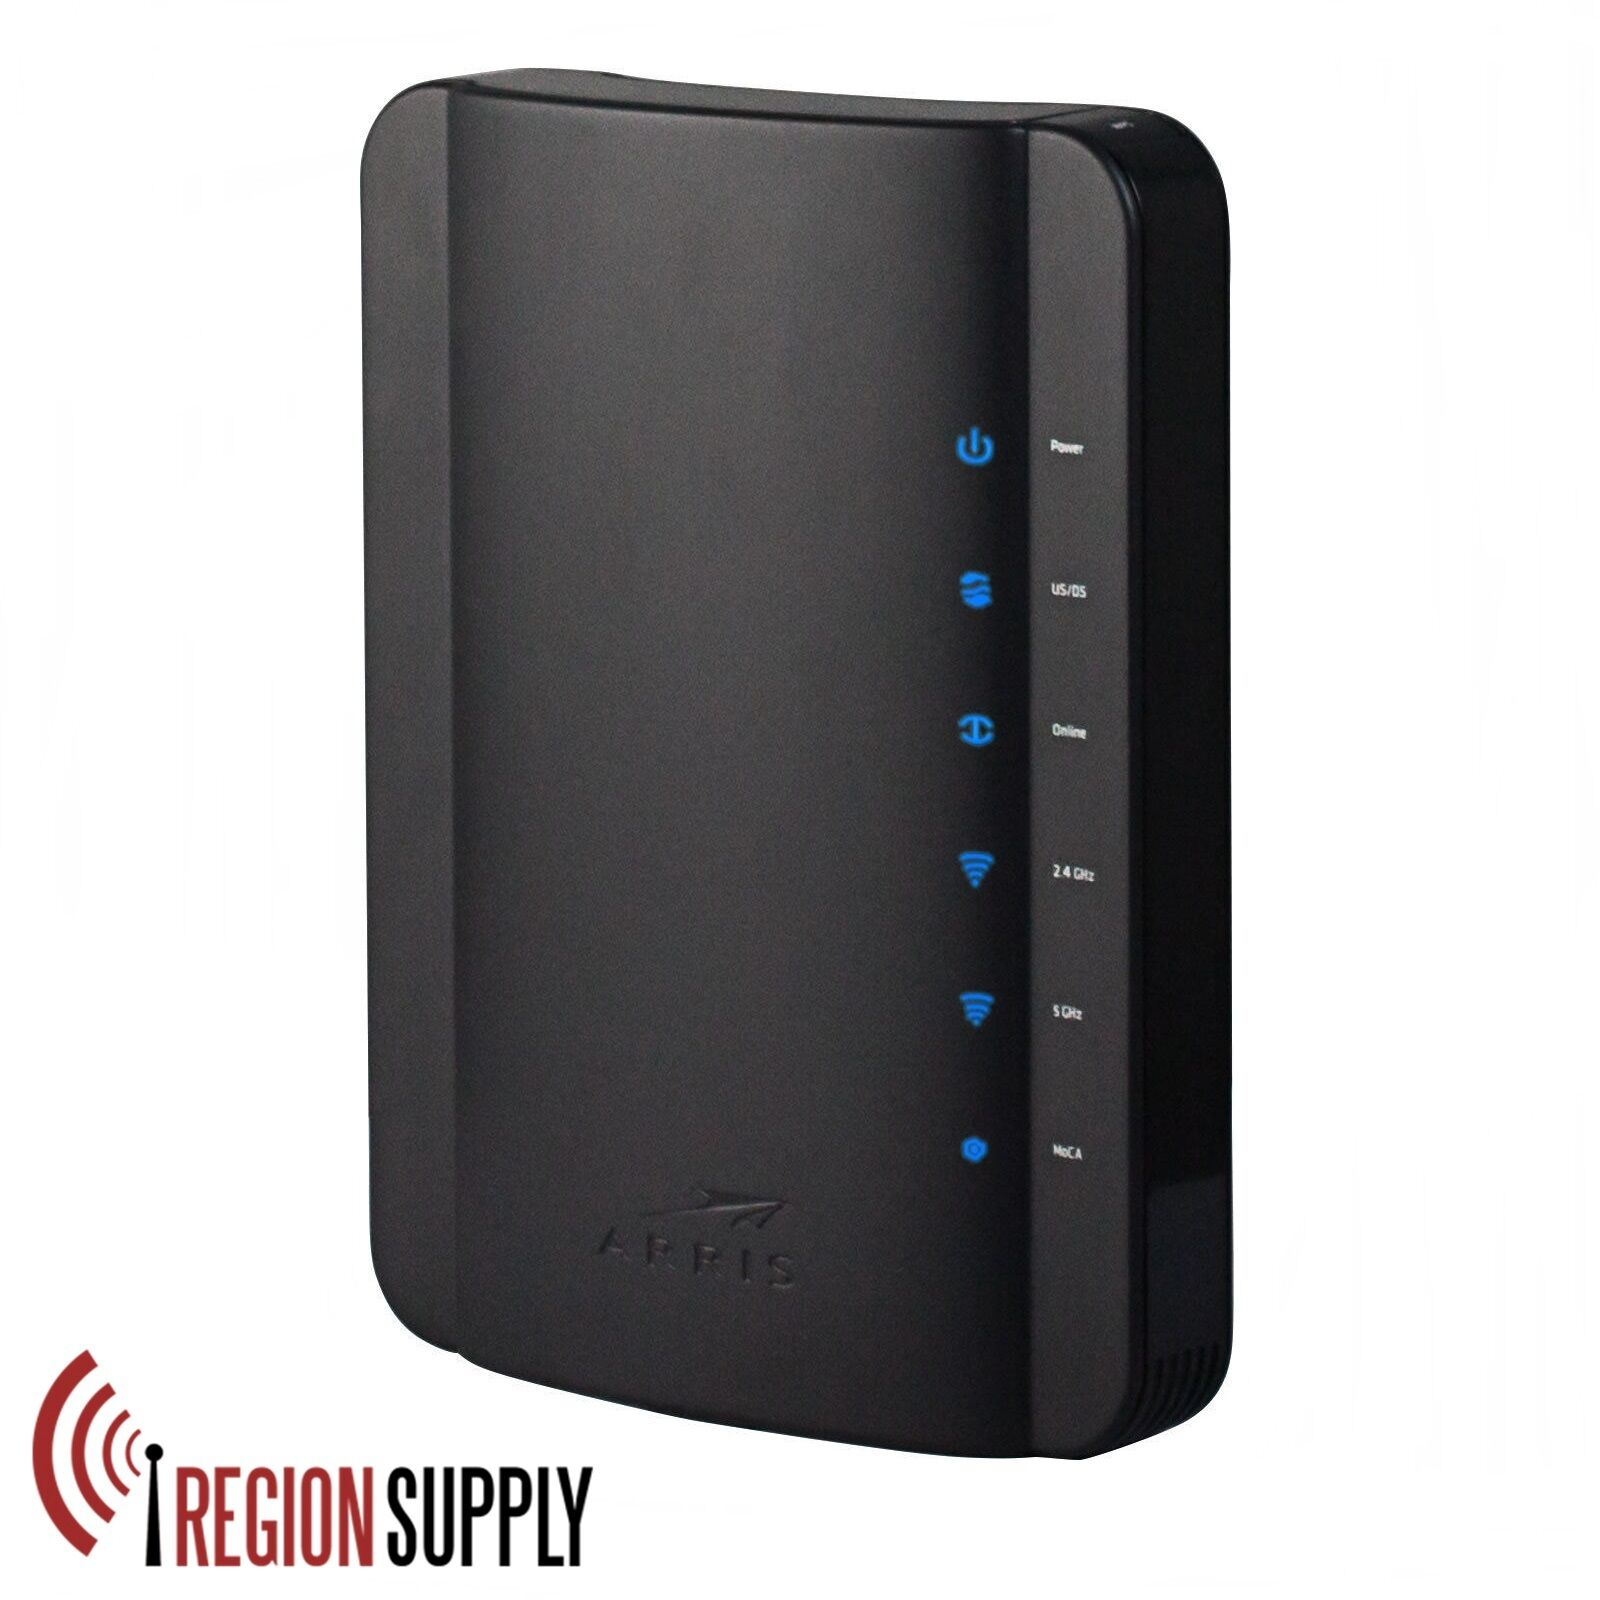 ARRIS Dg1670a Touchstone DOCSIS 3.0 Wireless 16x4 Cable Modem Router ...